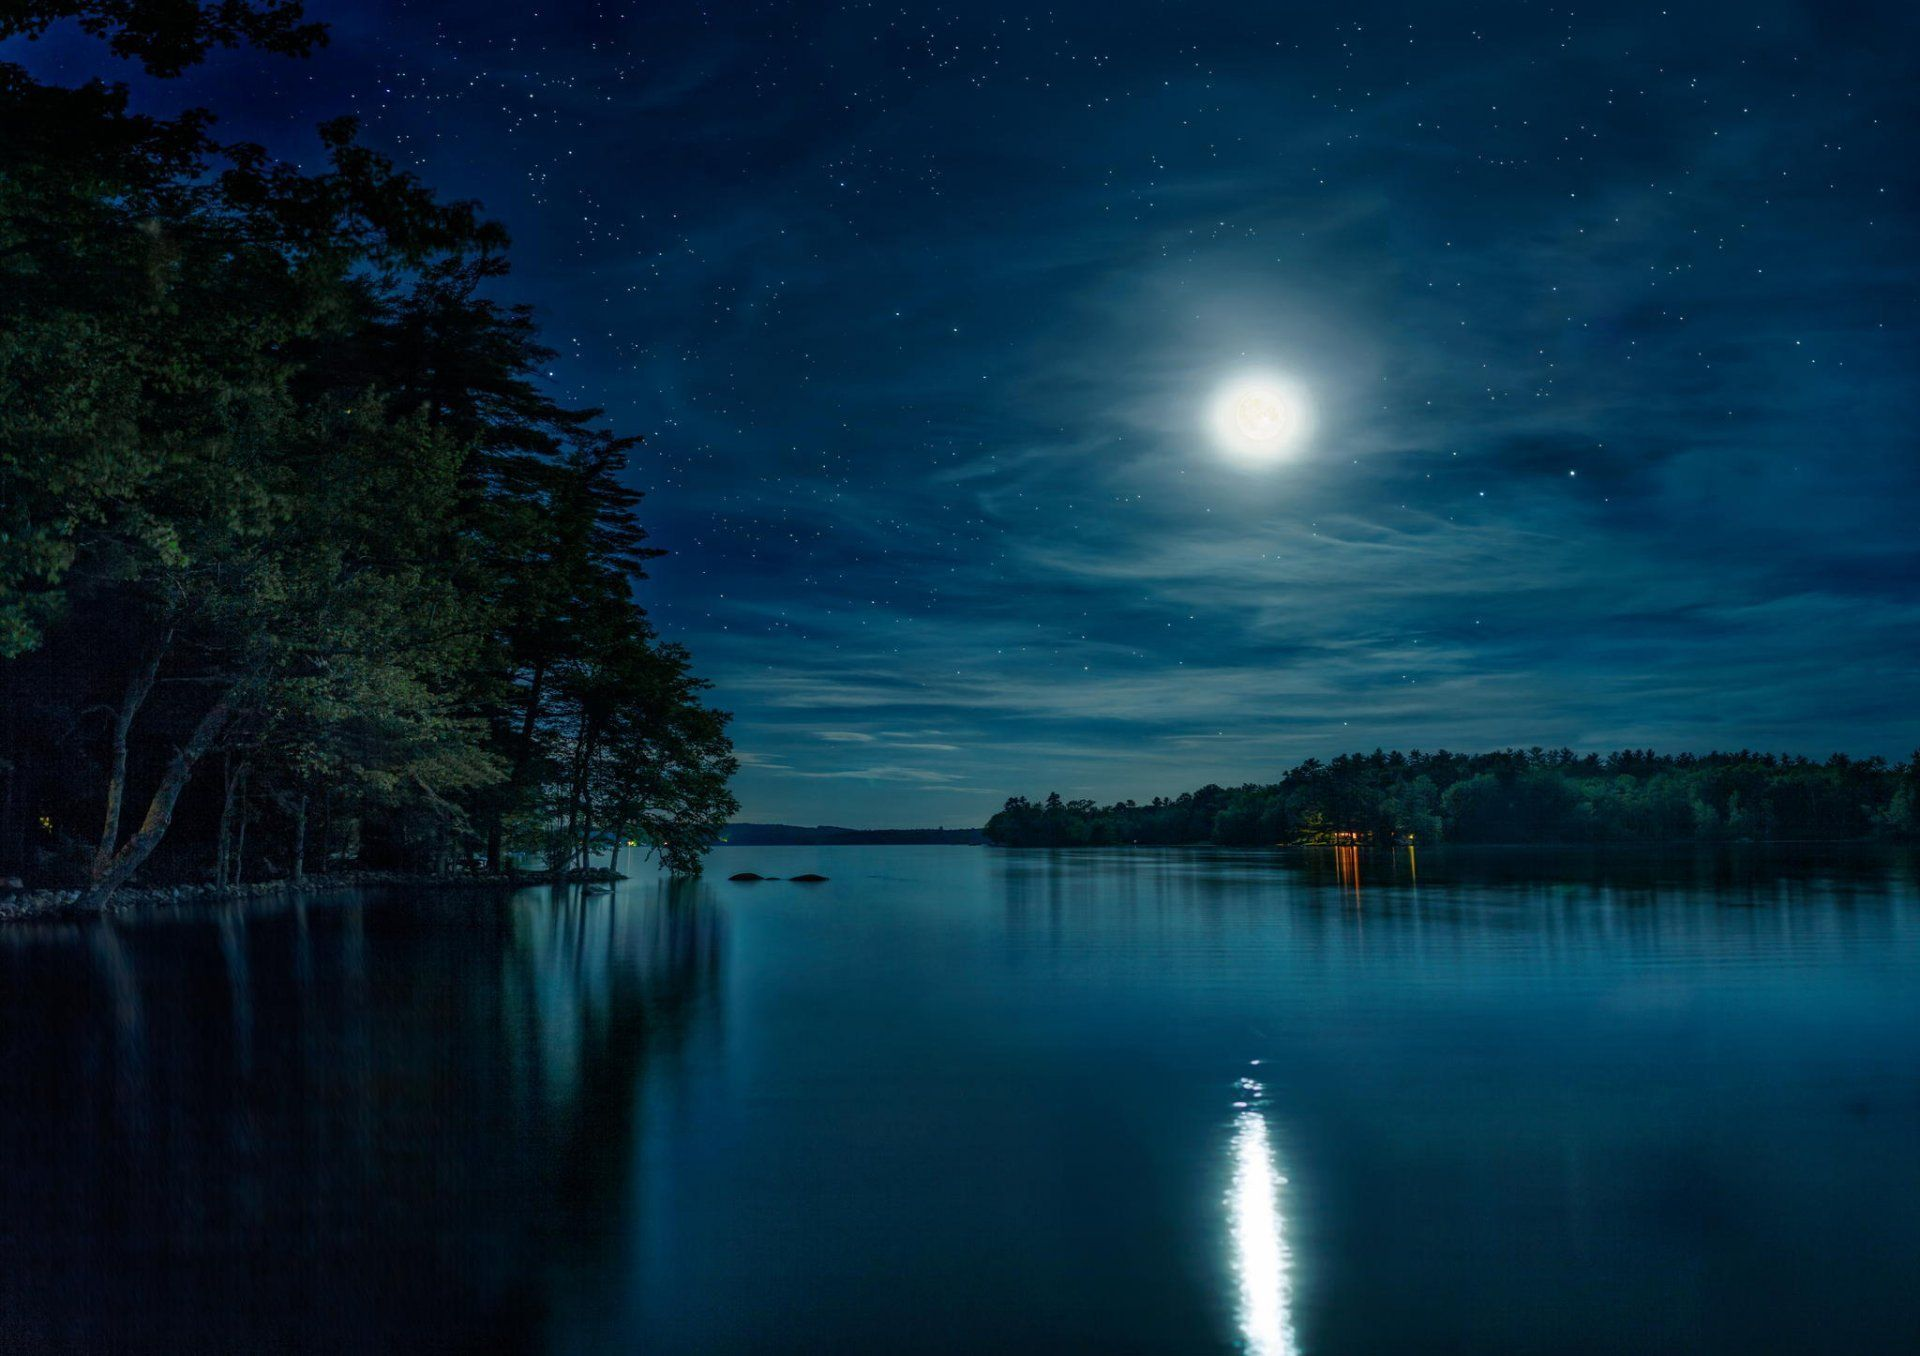 Night Lake Moon Sky Star Nature Forest Hd Wallpaper For Computer Or Android Device Mountains At Night Beautiful Nature Nature